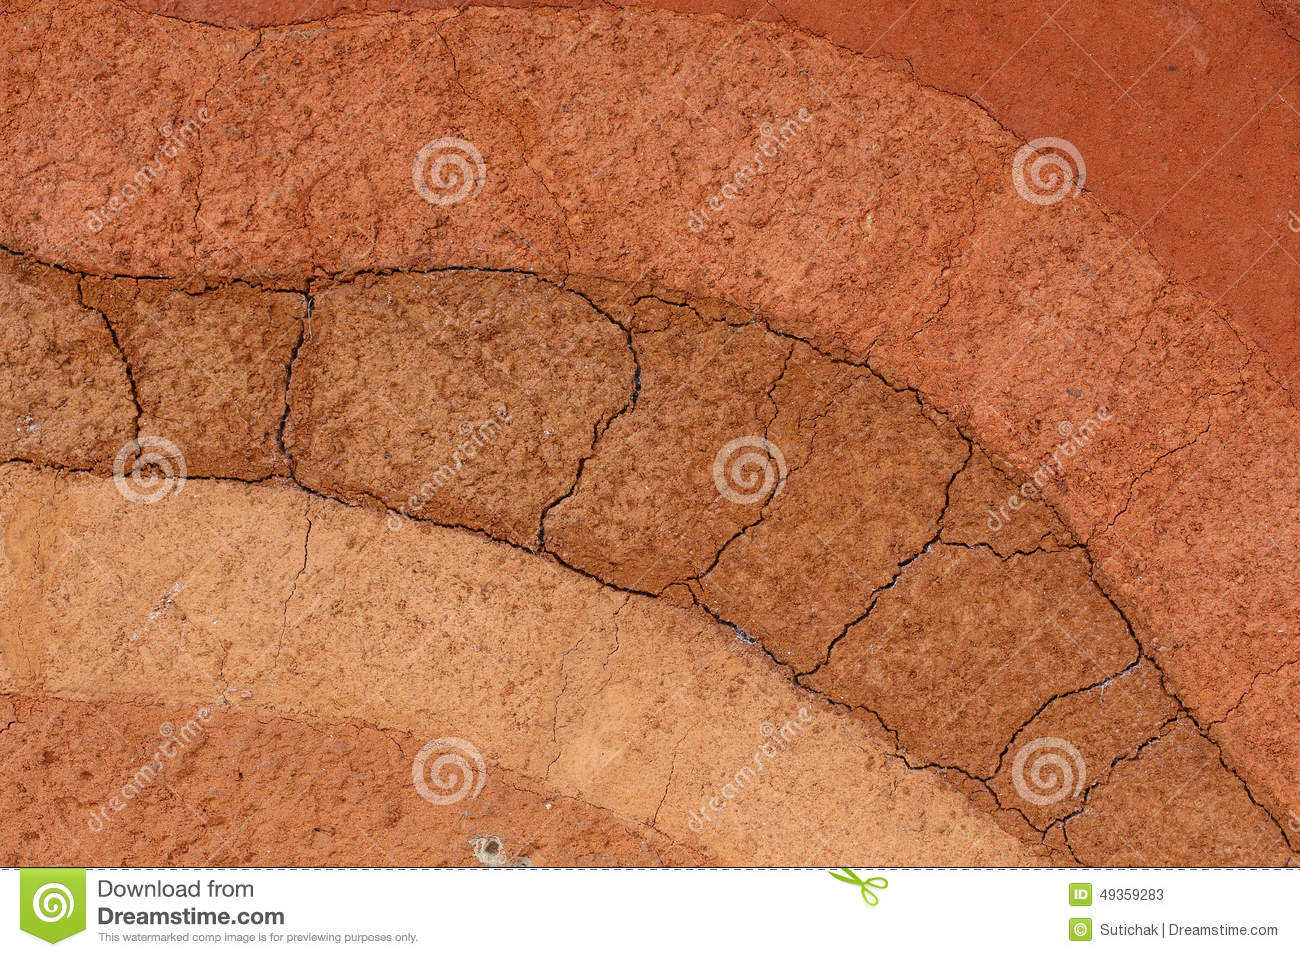 Earth layers vector illustration 27140980 for Earth soil layers